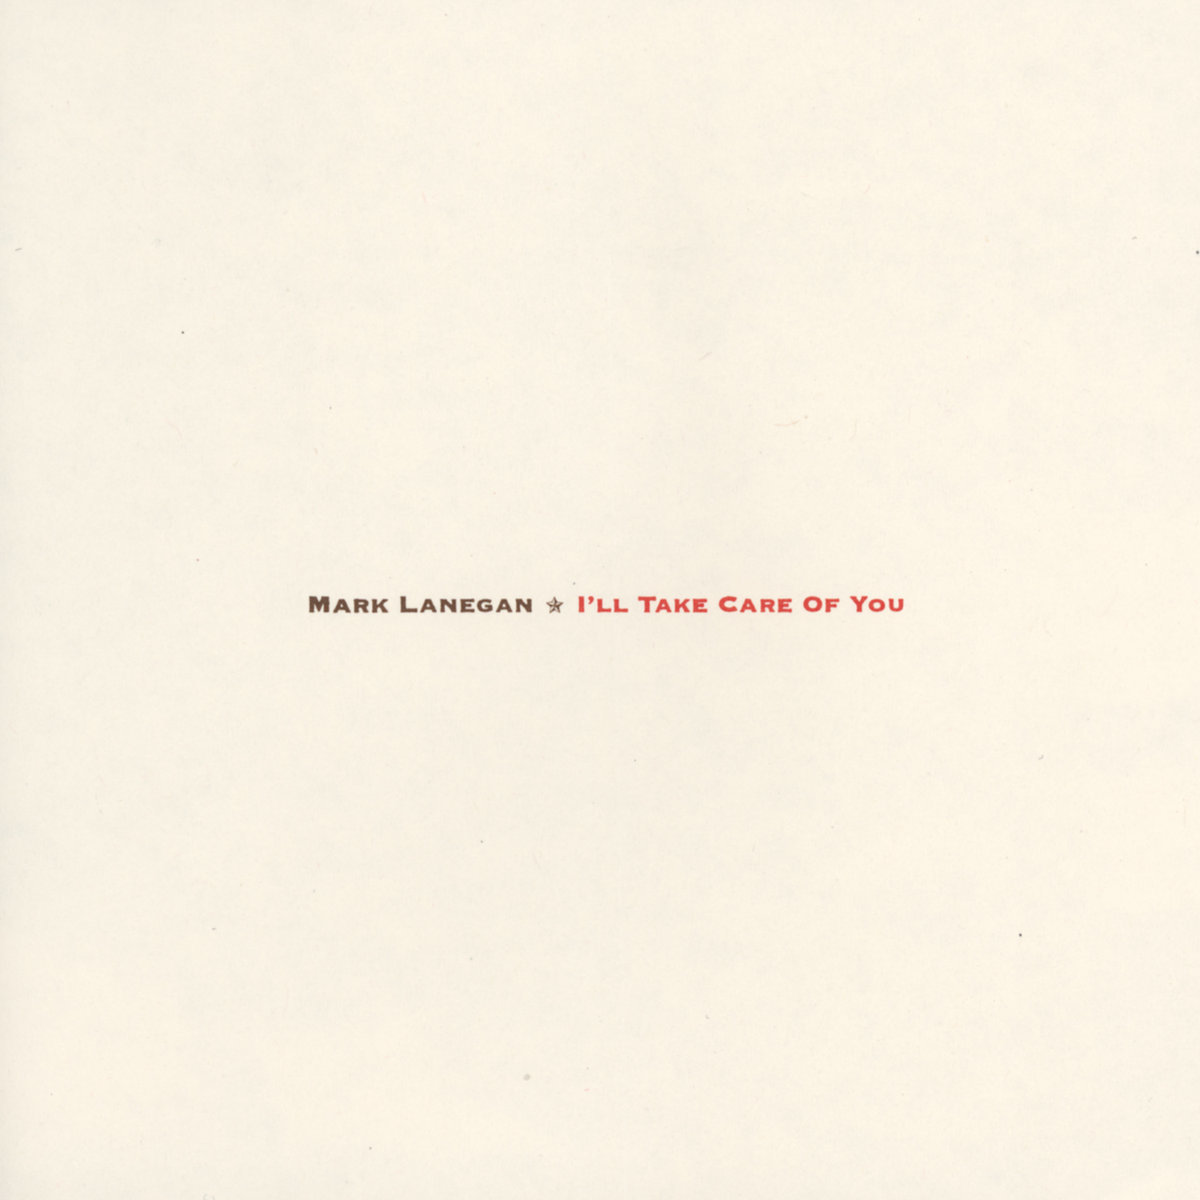 I'll Take Care Of You by Mark Lanegan image